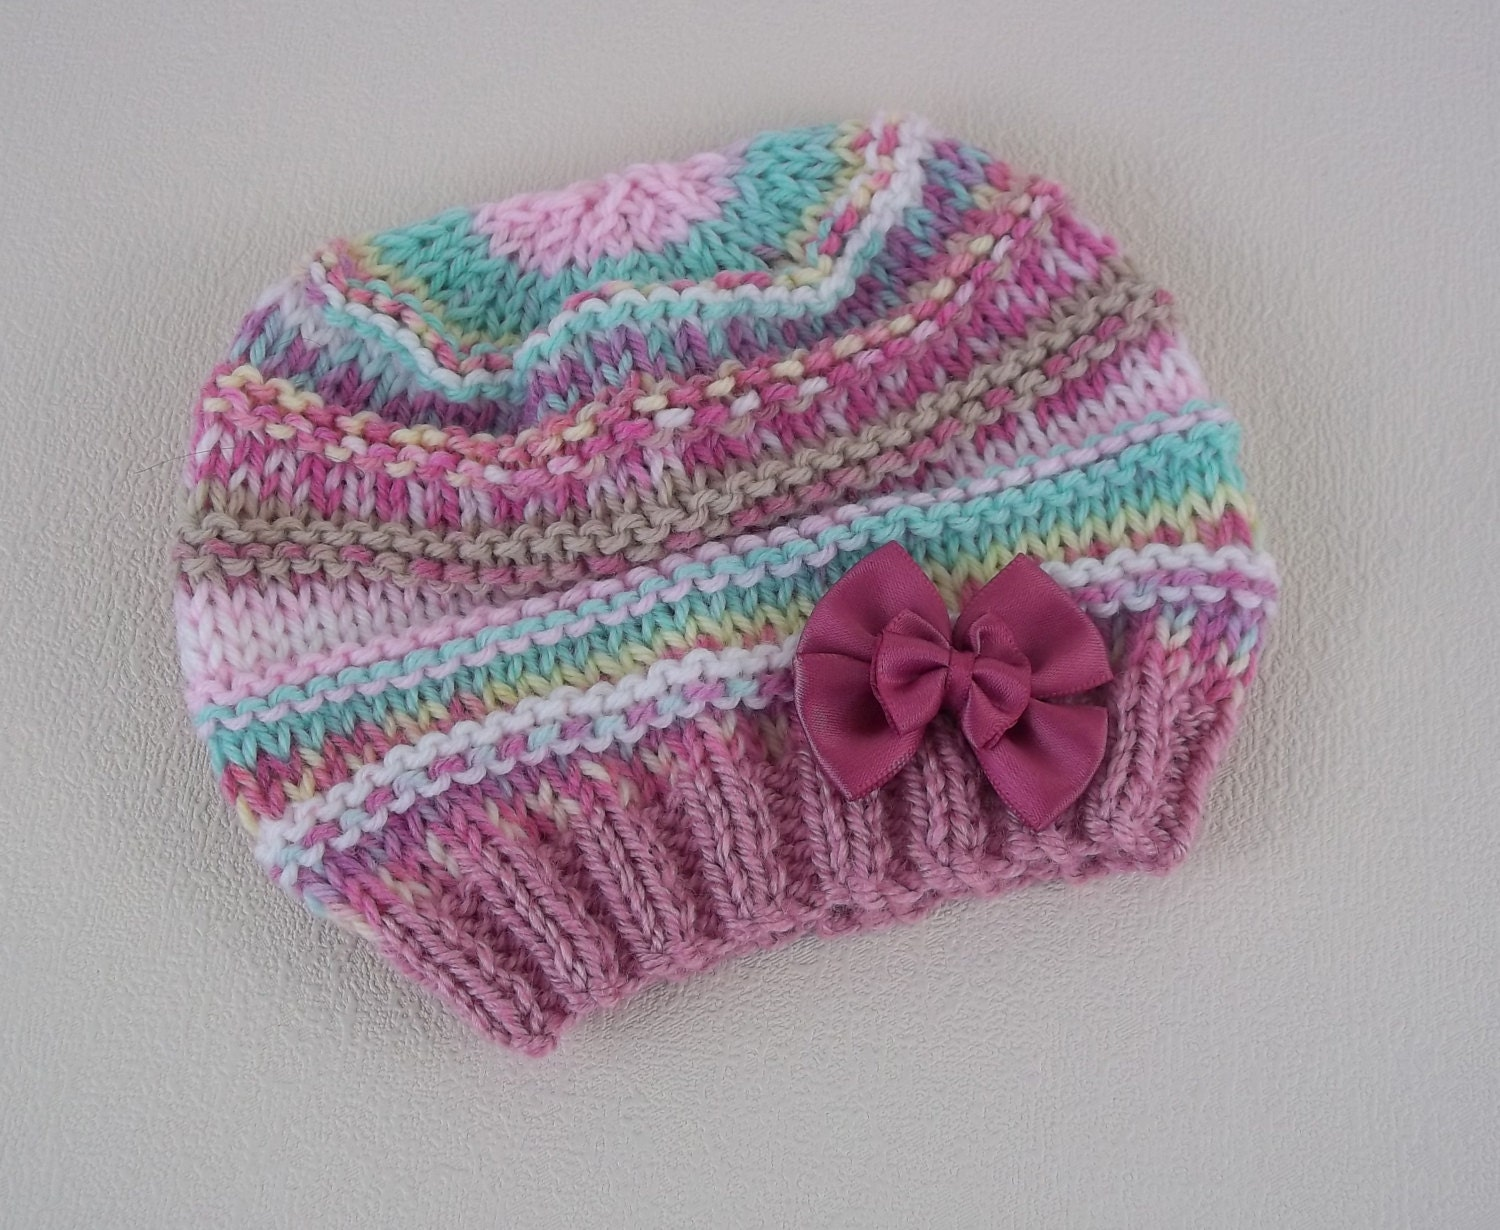 Knitting Instructions For Beginners Pdf : Baby knitting pattern easy knit hat download pdf